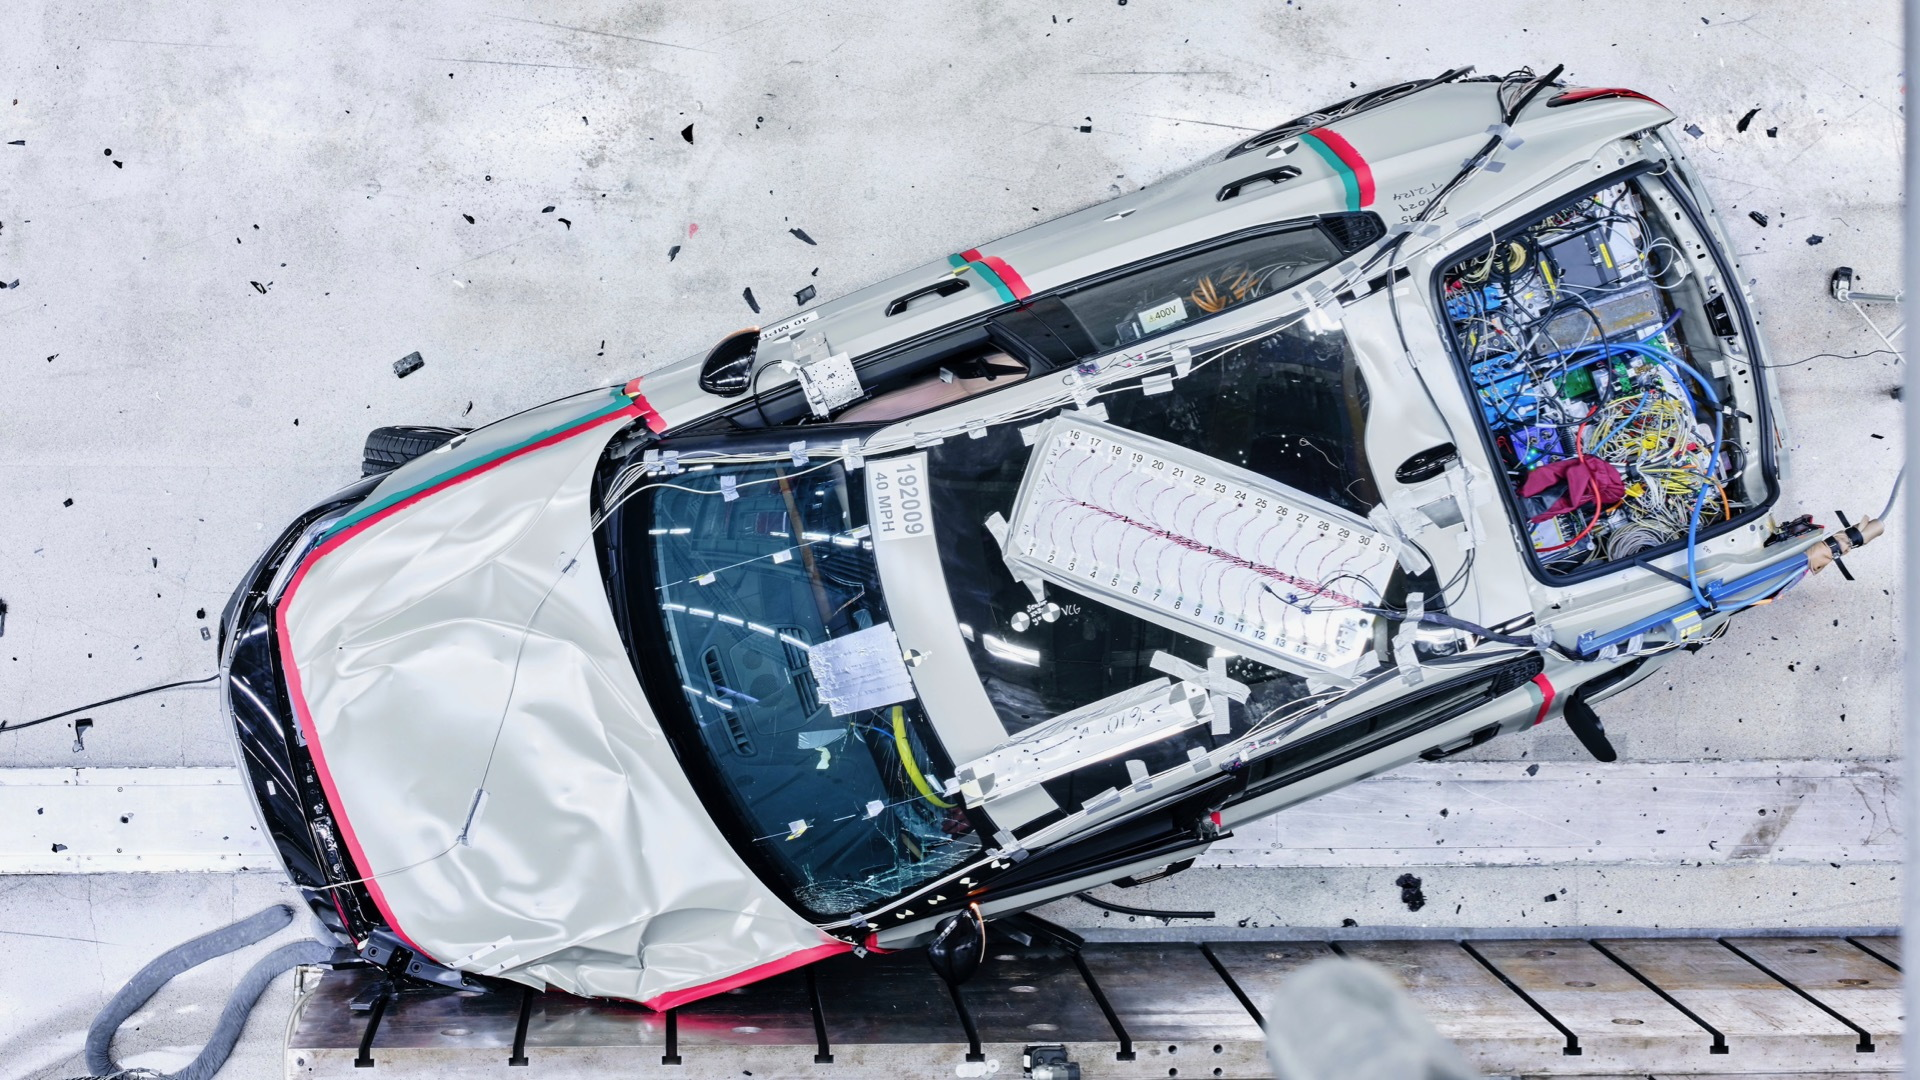 Polestar 2 crash test